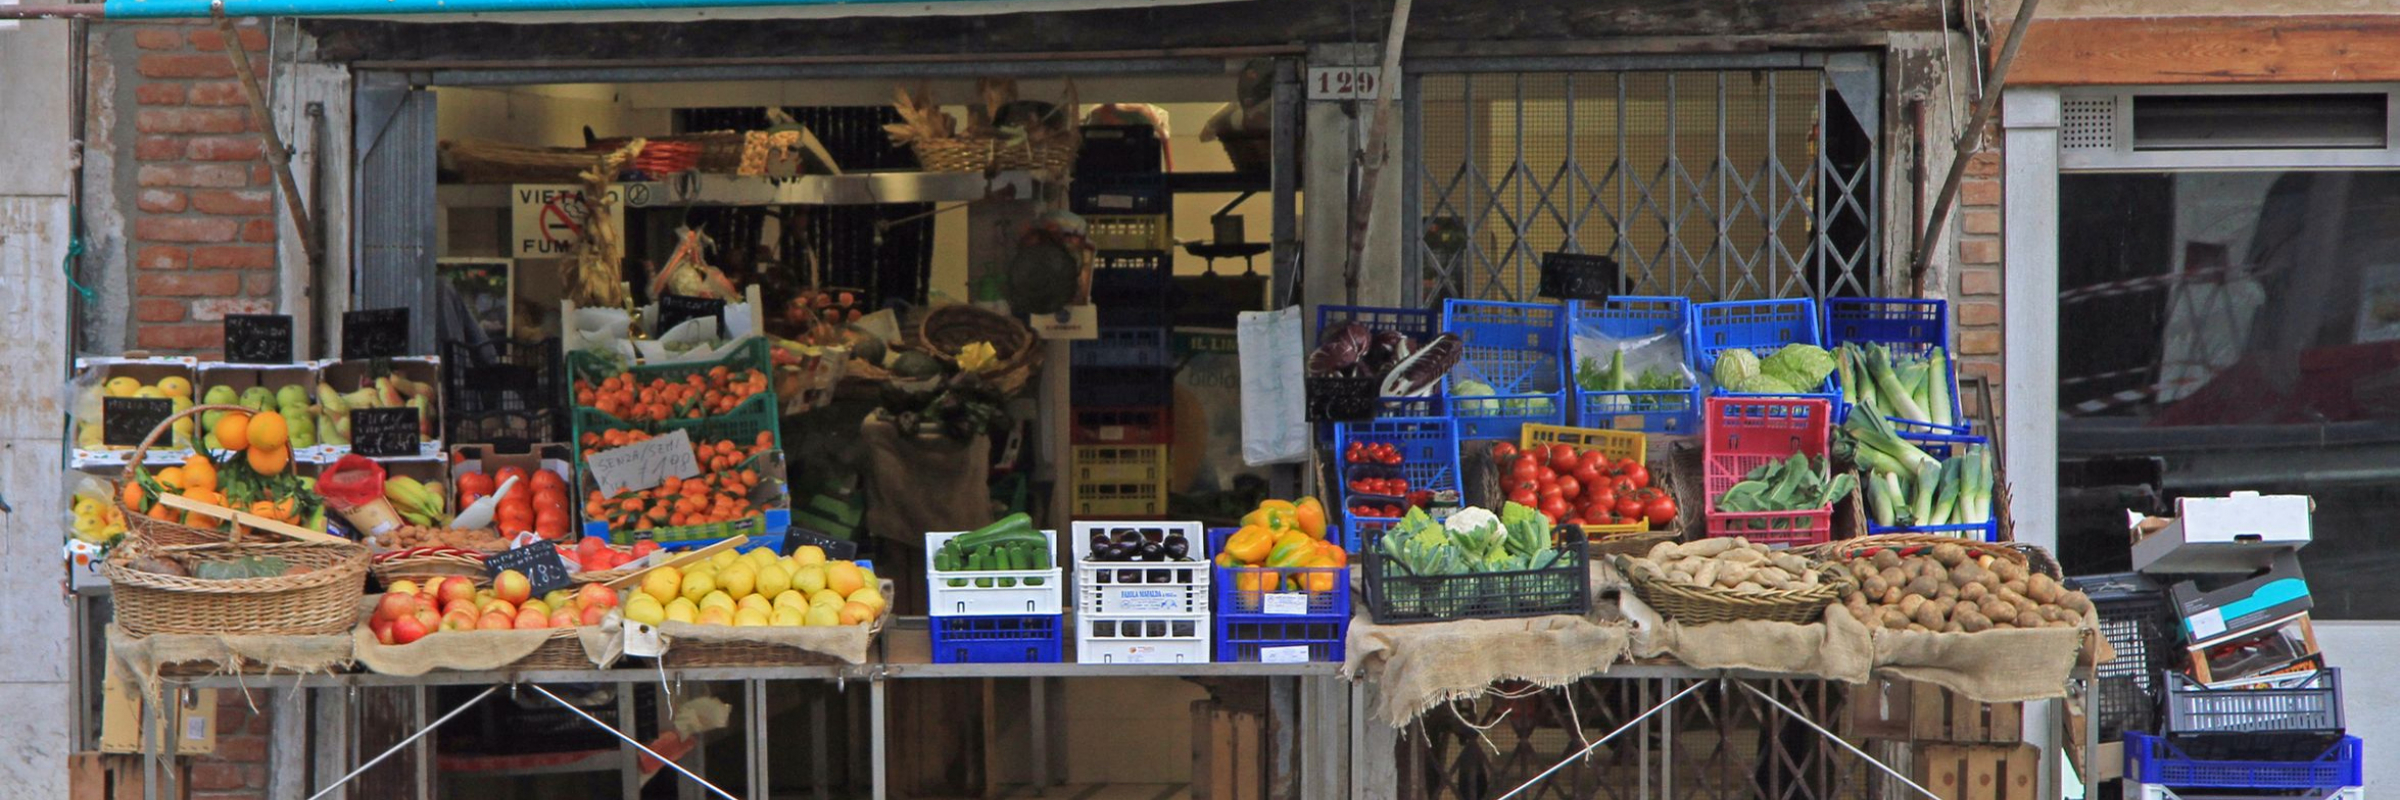 Stand with fruit and veg in urban area